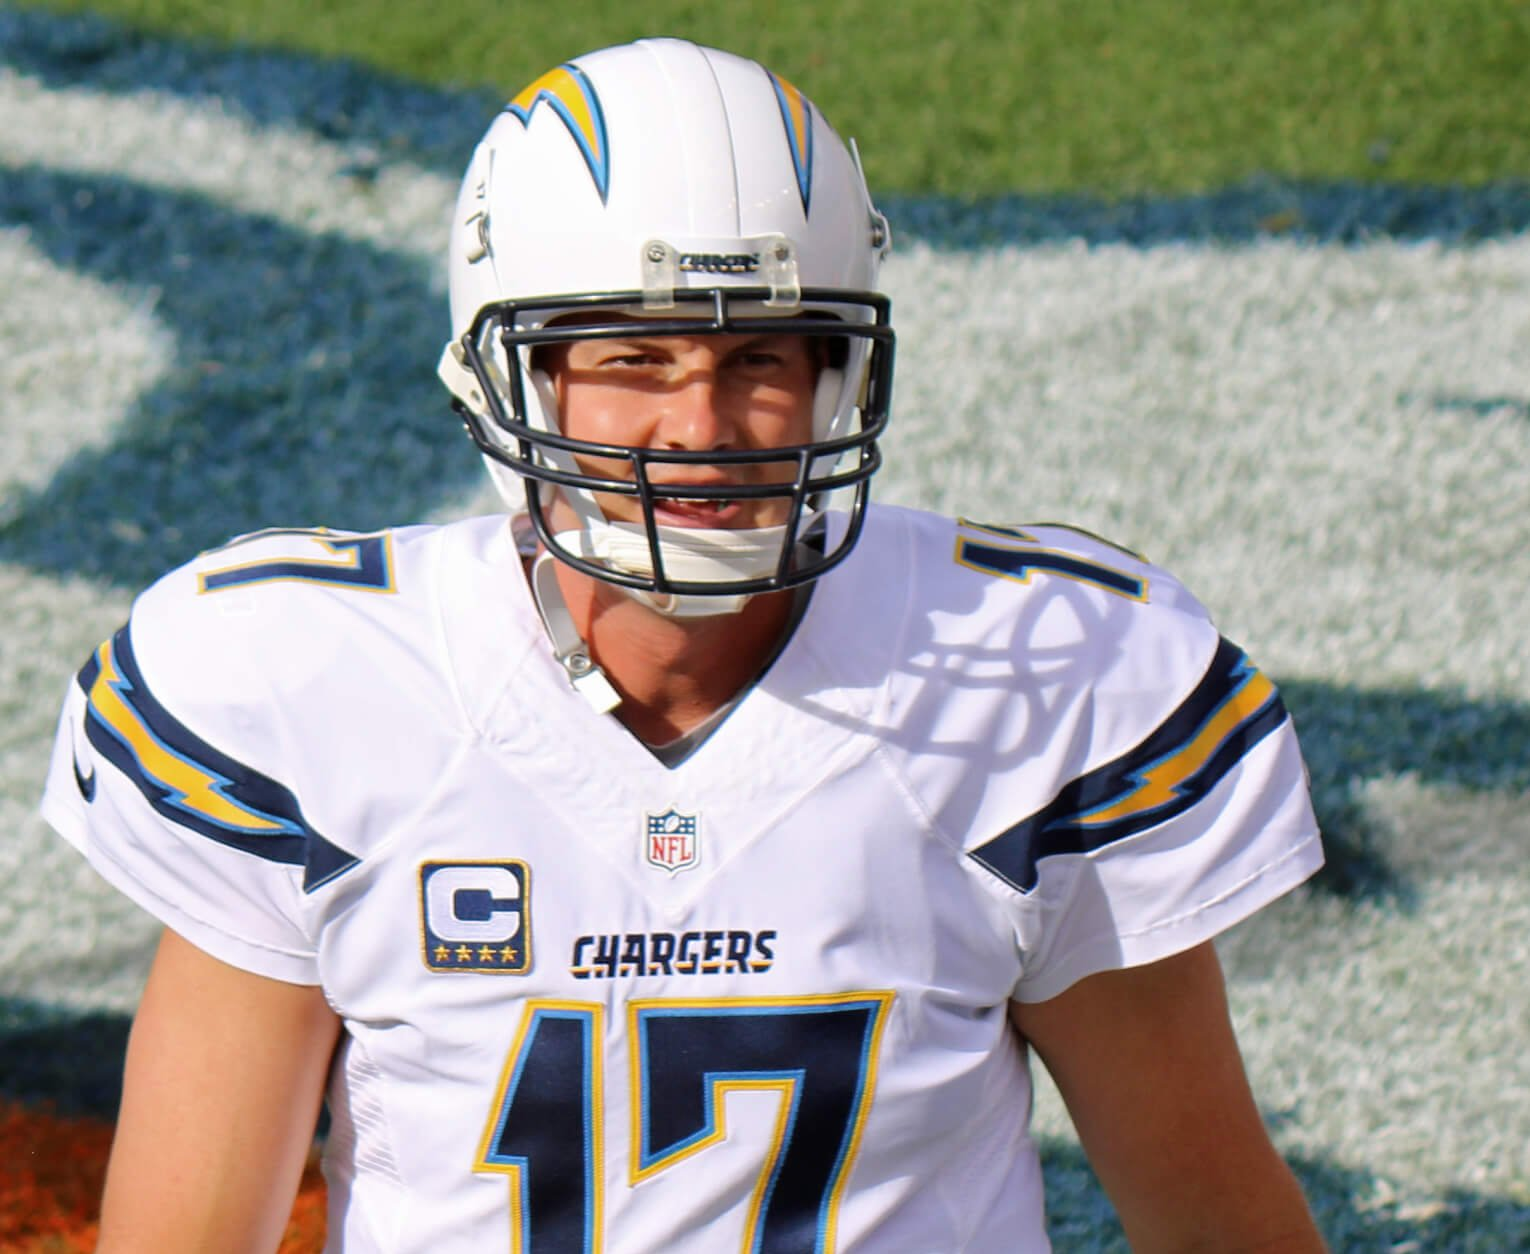 Chargers Gaining Ground on Chiefs in AFC West Odds as Minicamps Open